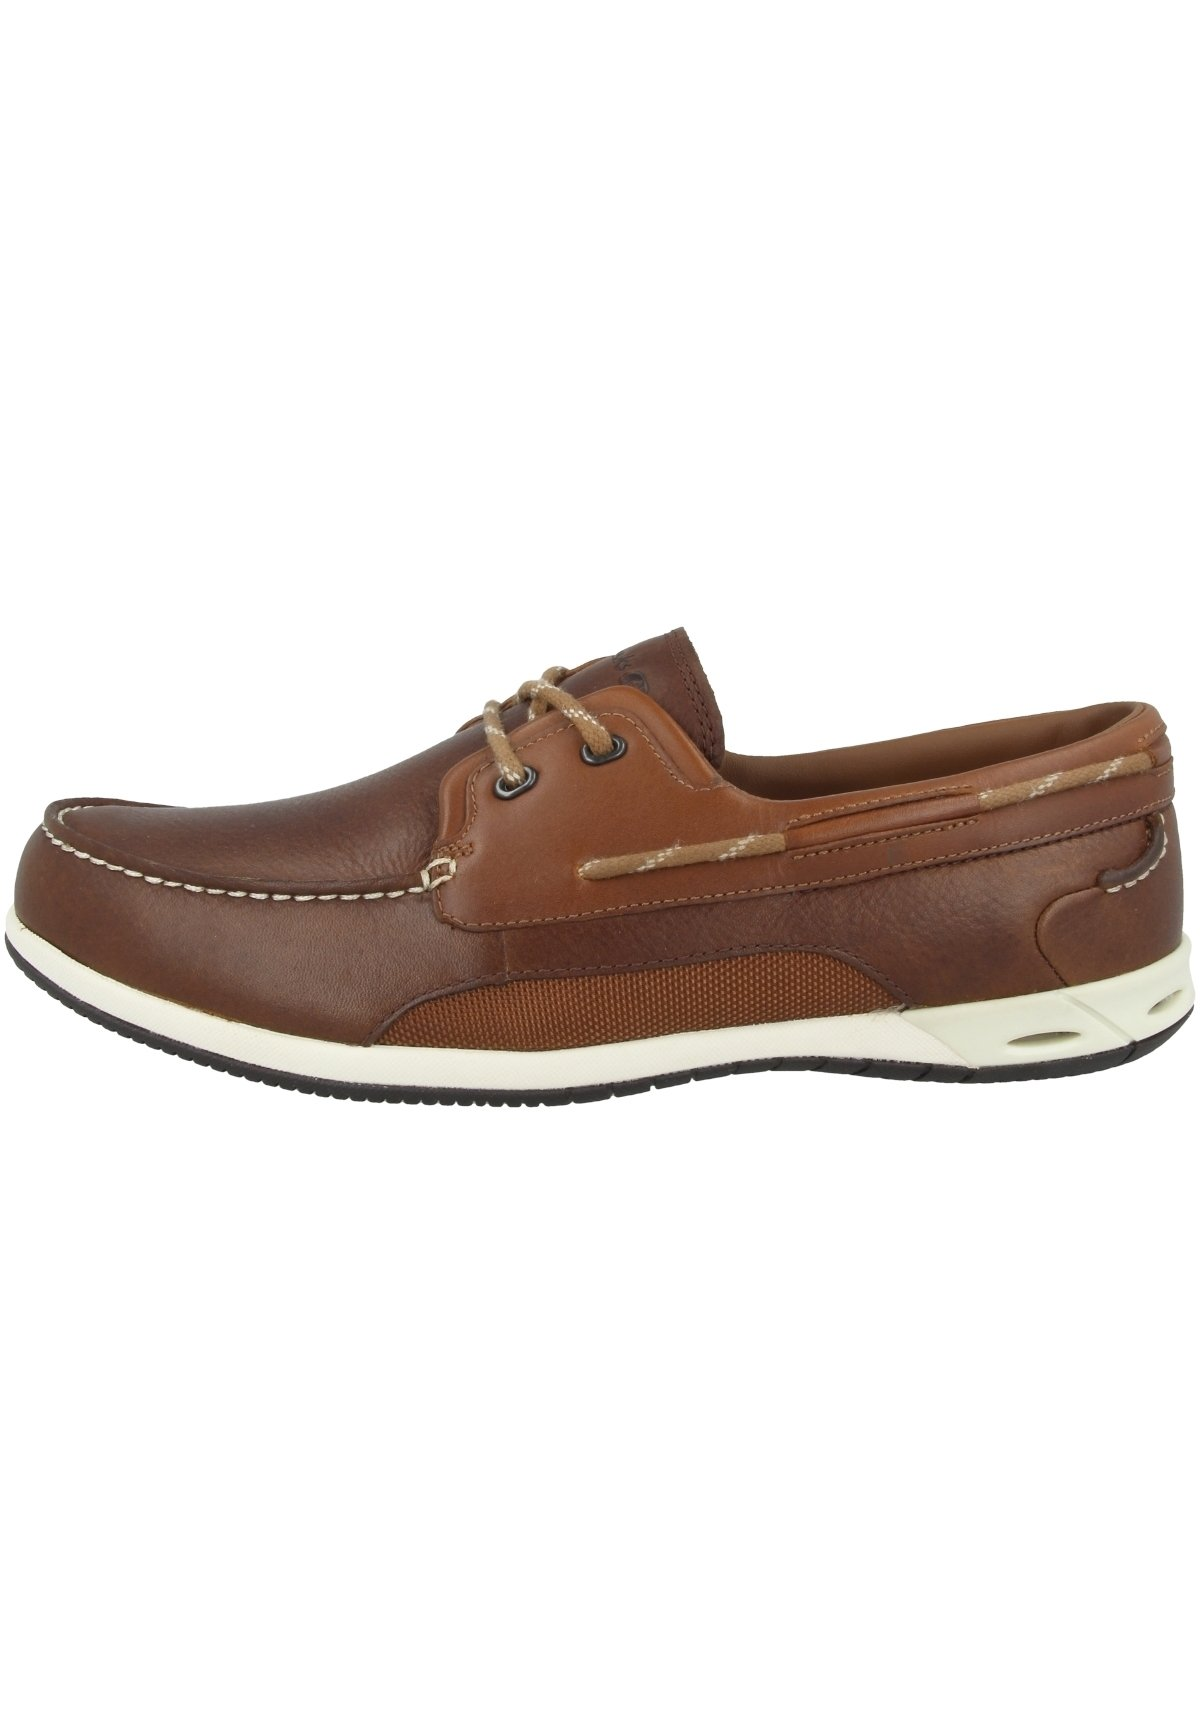 Boat shoes brown leather (20357581)